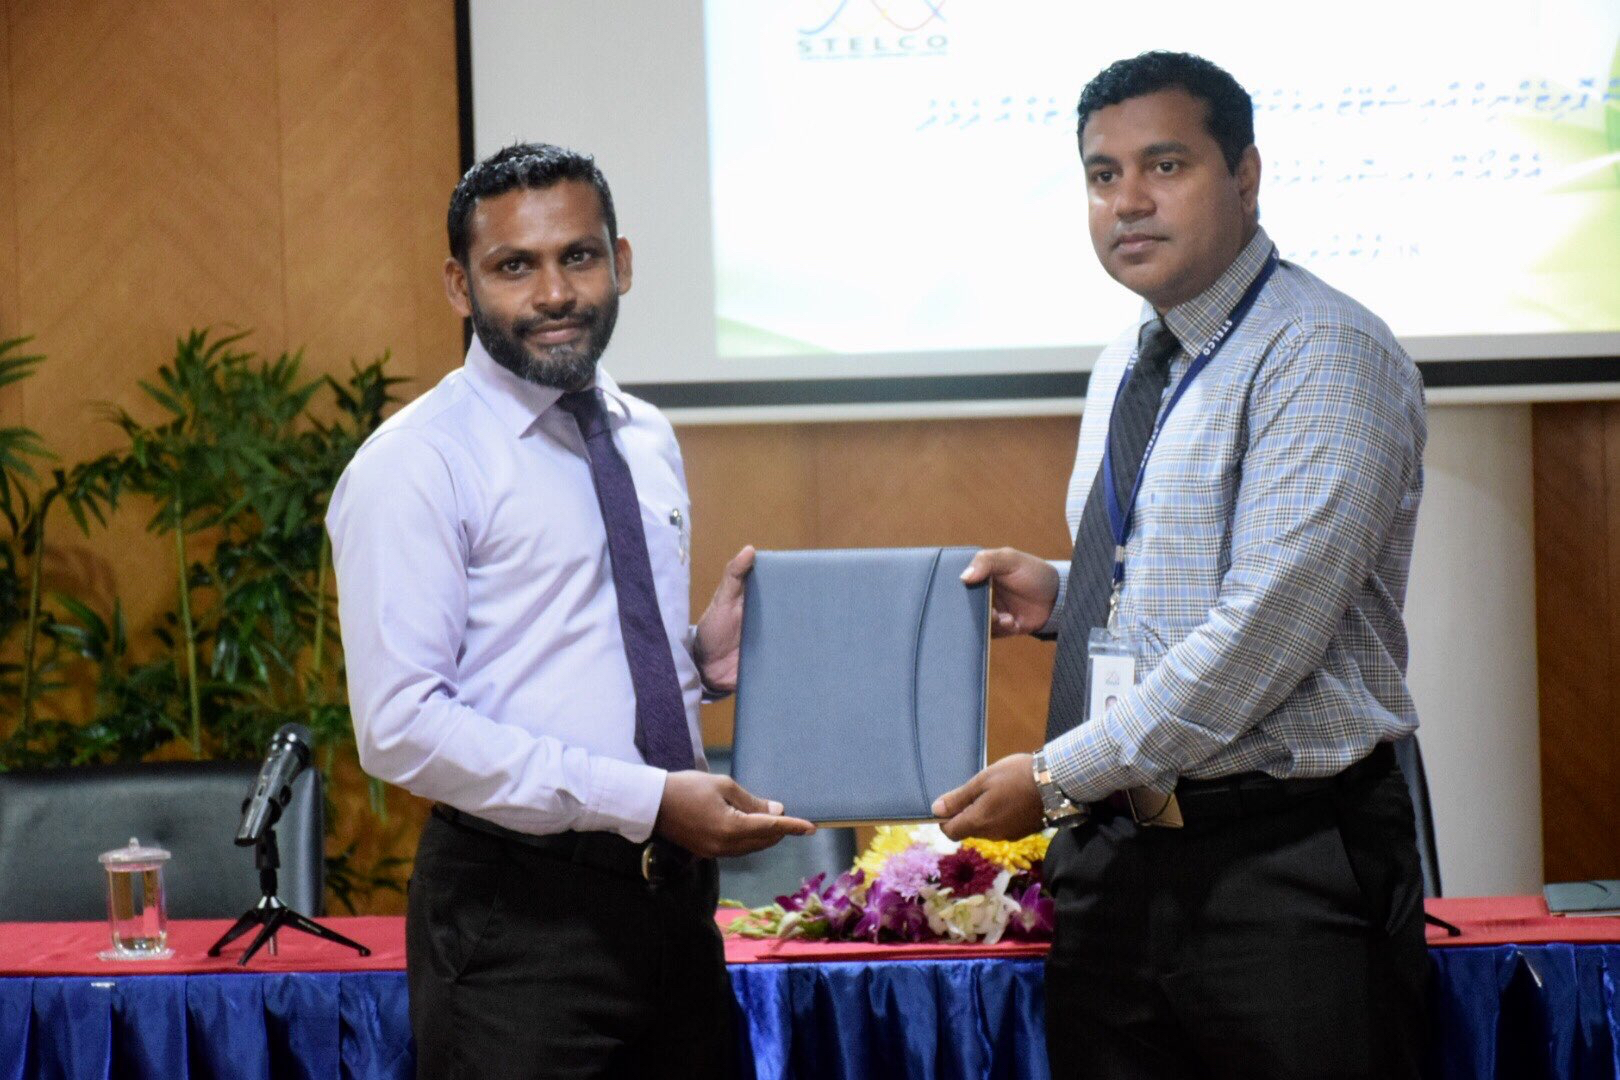 MOU Signing Between STELCO And MALDIVES POLYTECHNIC On Purpose Of Industrial Experience.